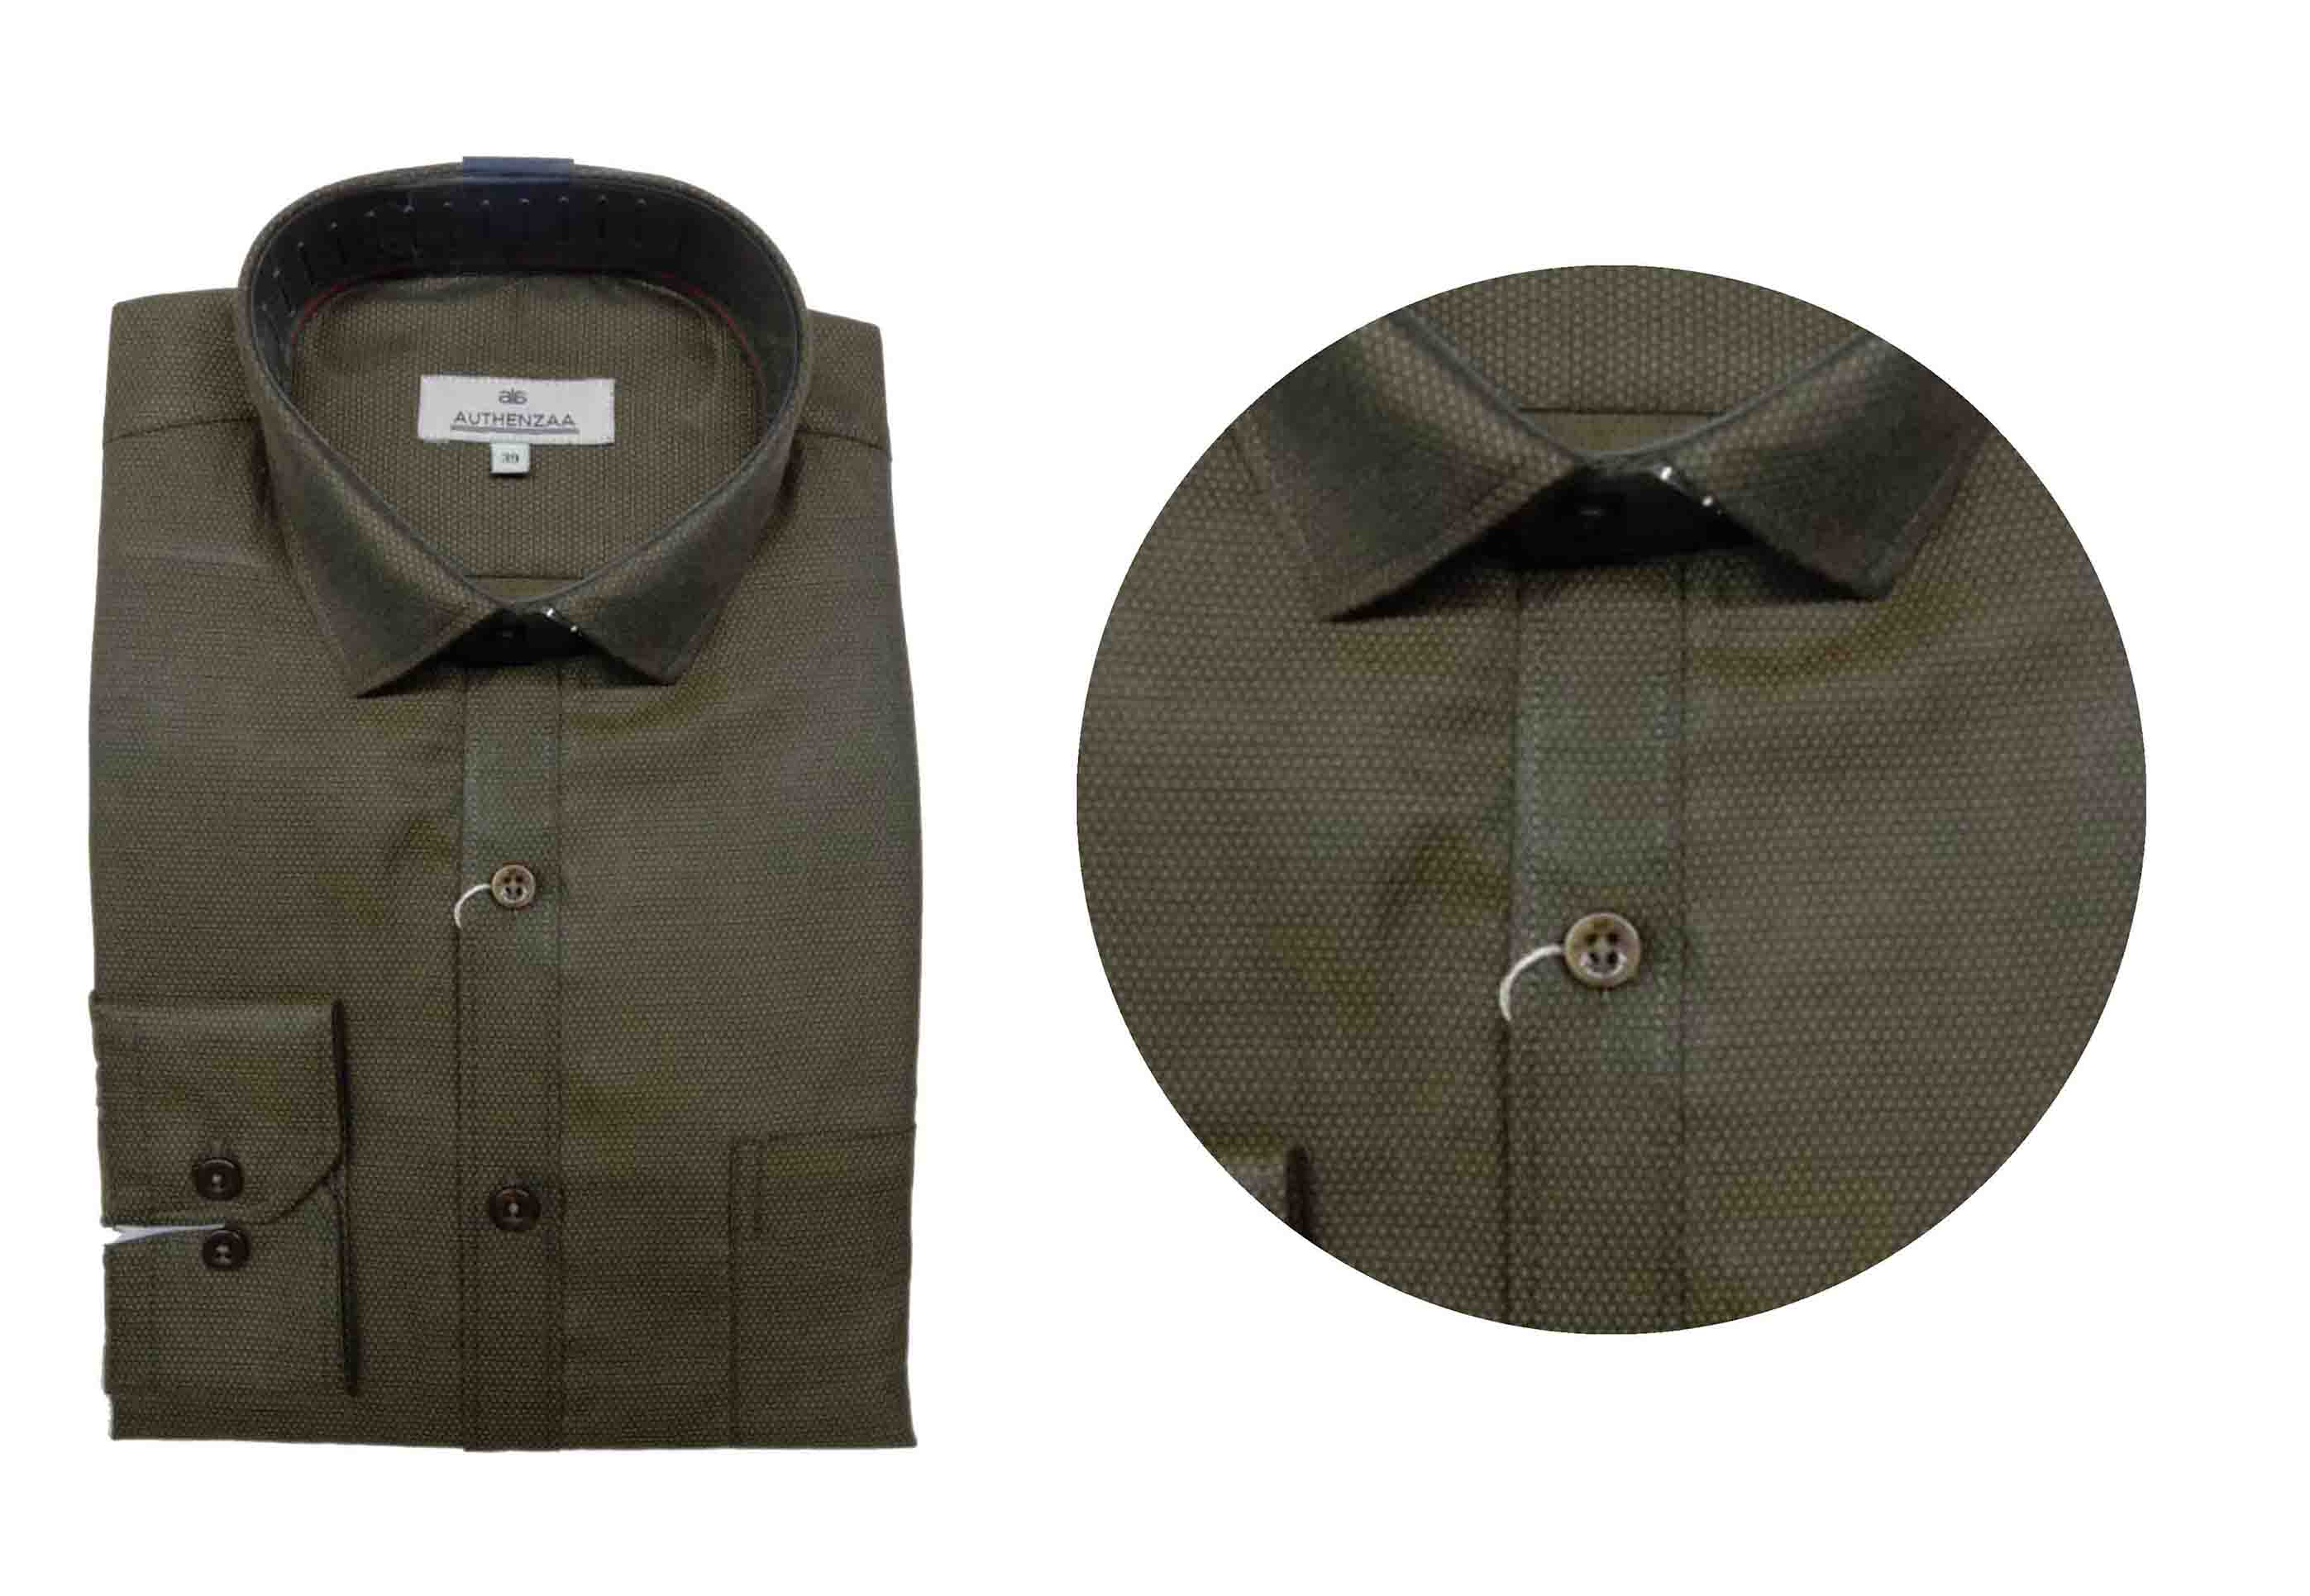 BT SEP 03 2019-PISTA CHECK MEN'S FORMAL SHIRT